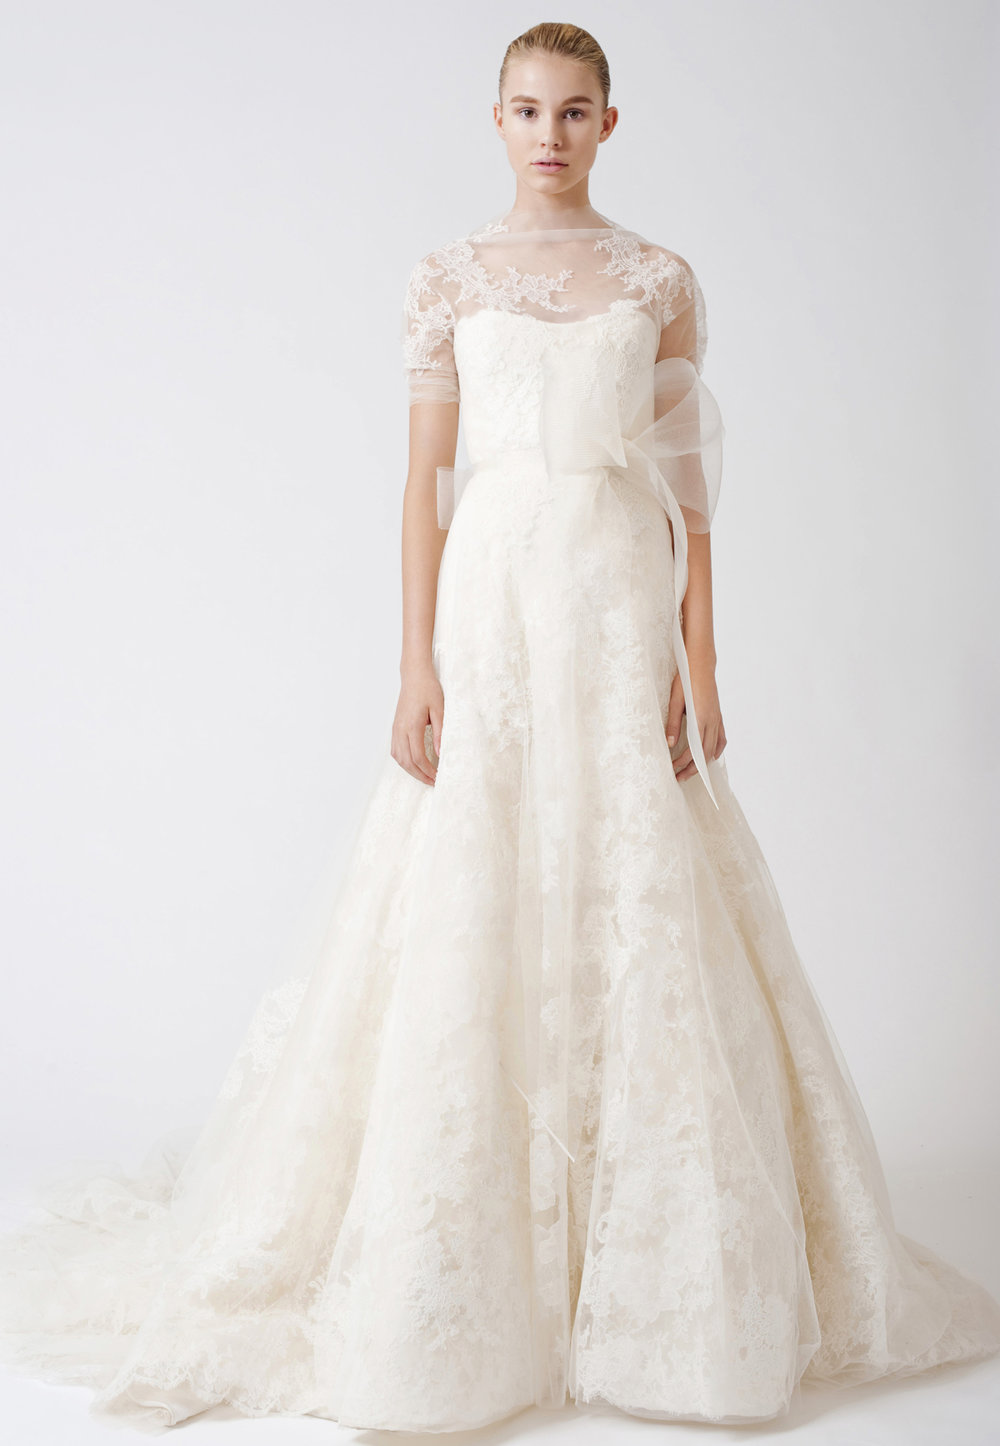 Iconic Style    Gown Name: Esther    Description: An Illusion sweetheart soft A-line gown with multi-layered Chantilly lace appliqué, sheer tulle elbow-length sleeve with floating lace, and horsehair sash at natural waist. Available in ivory or white with ivory or white horsehair bow.